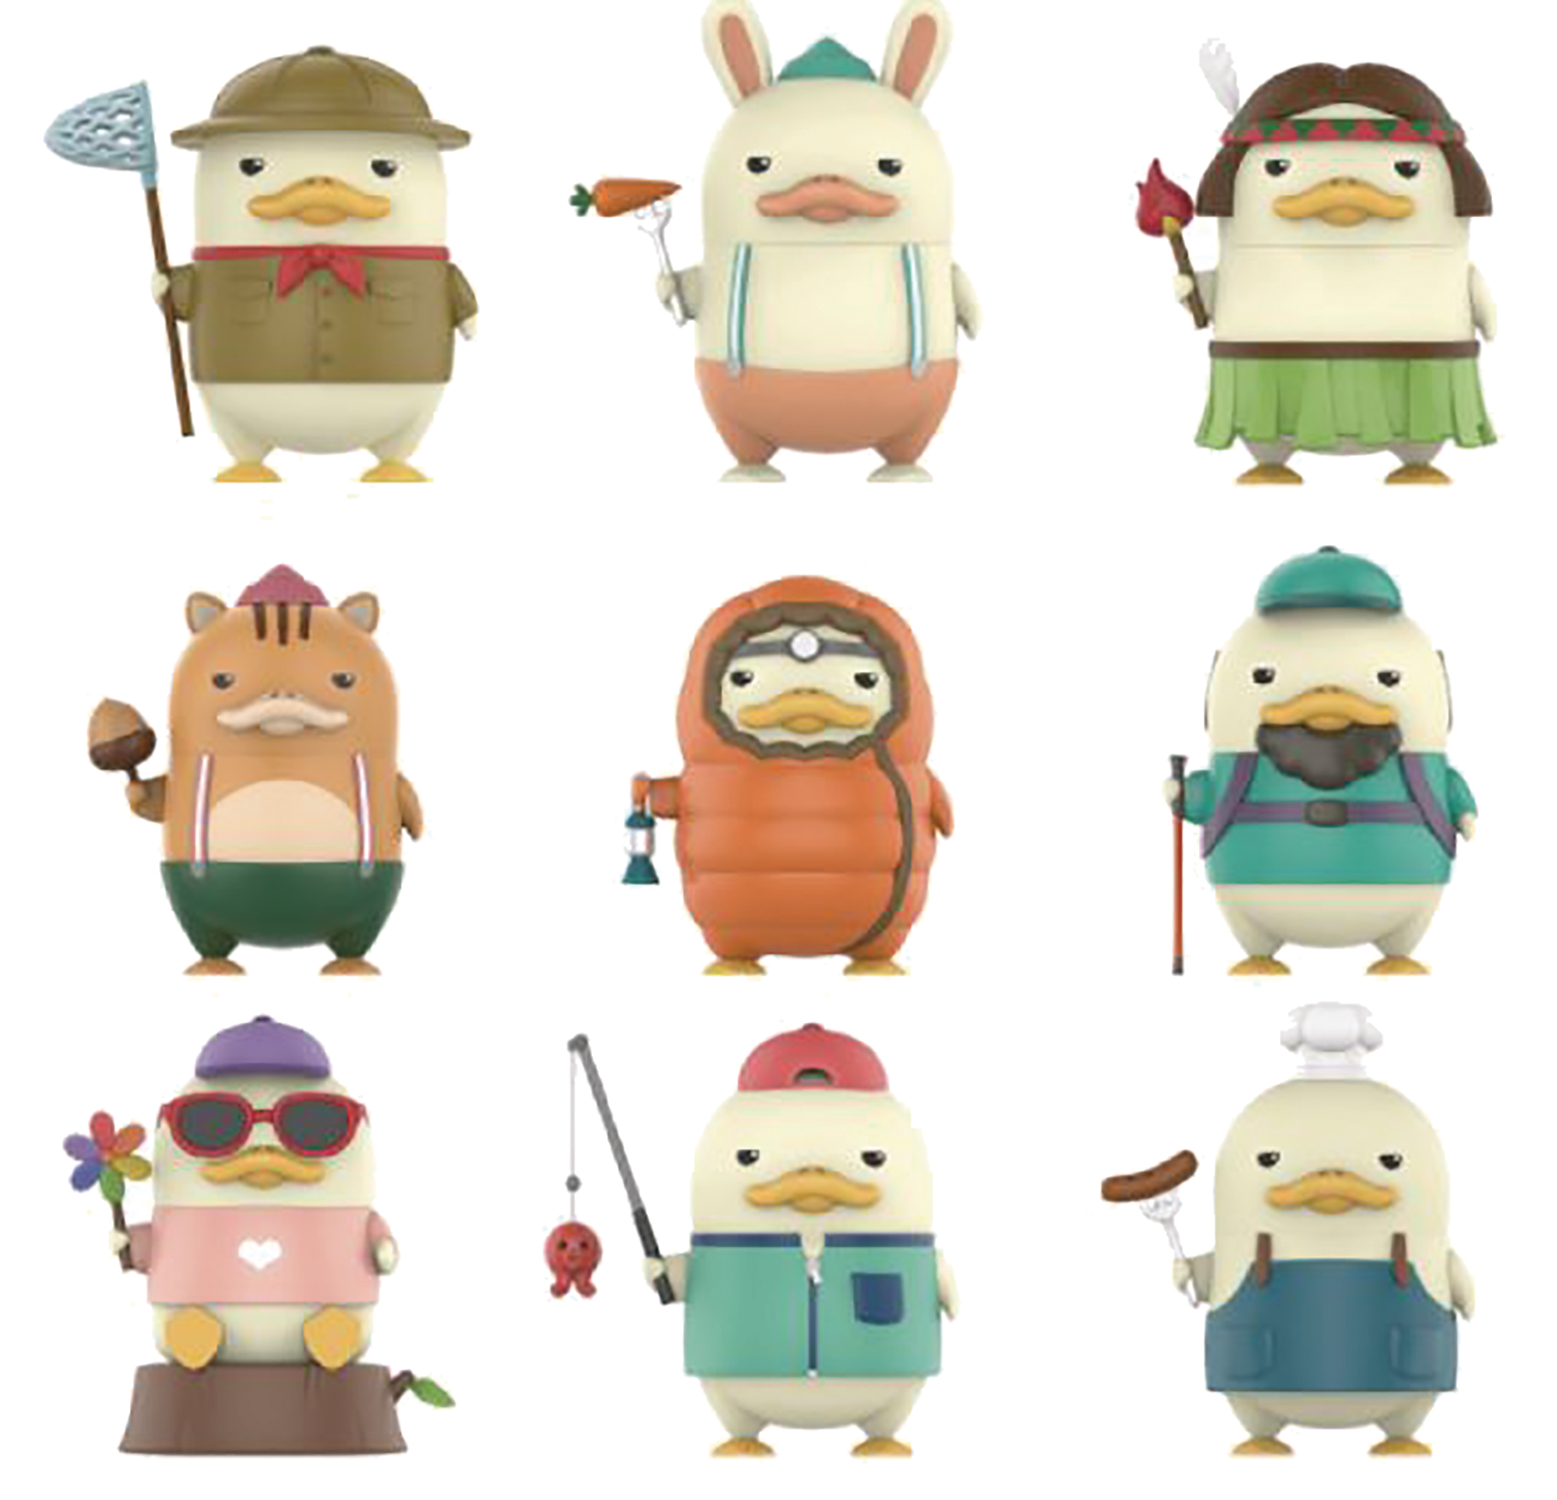 POP MART DUCKOO IN THE FOREST 9PC FIG BMB DS